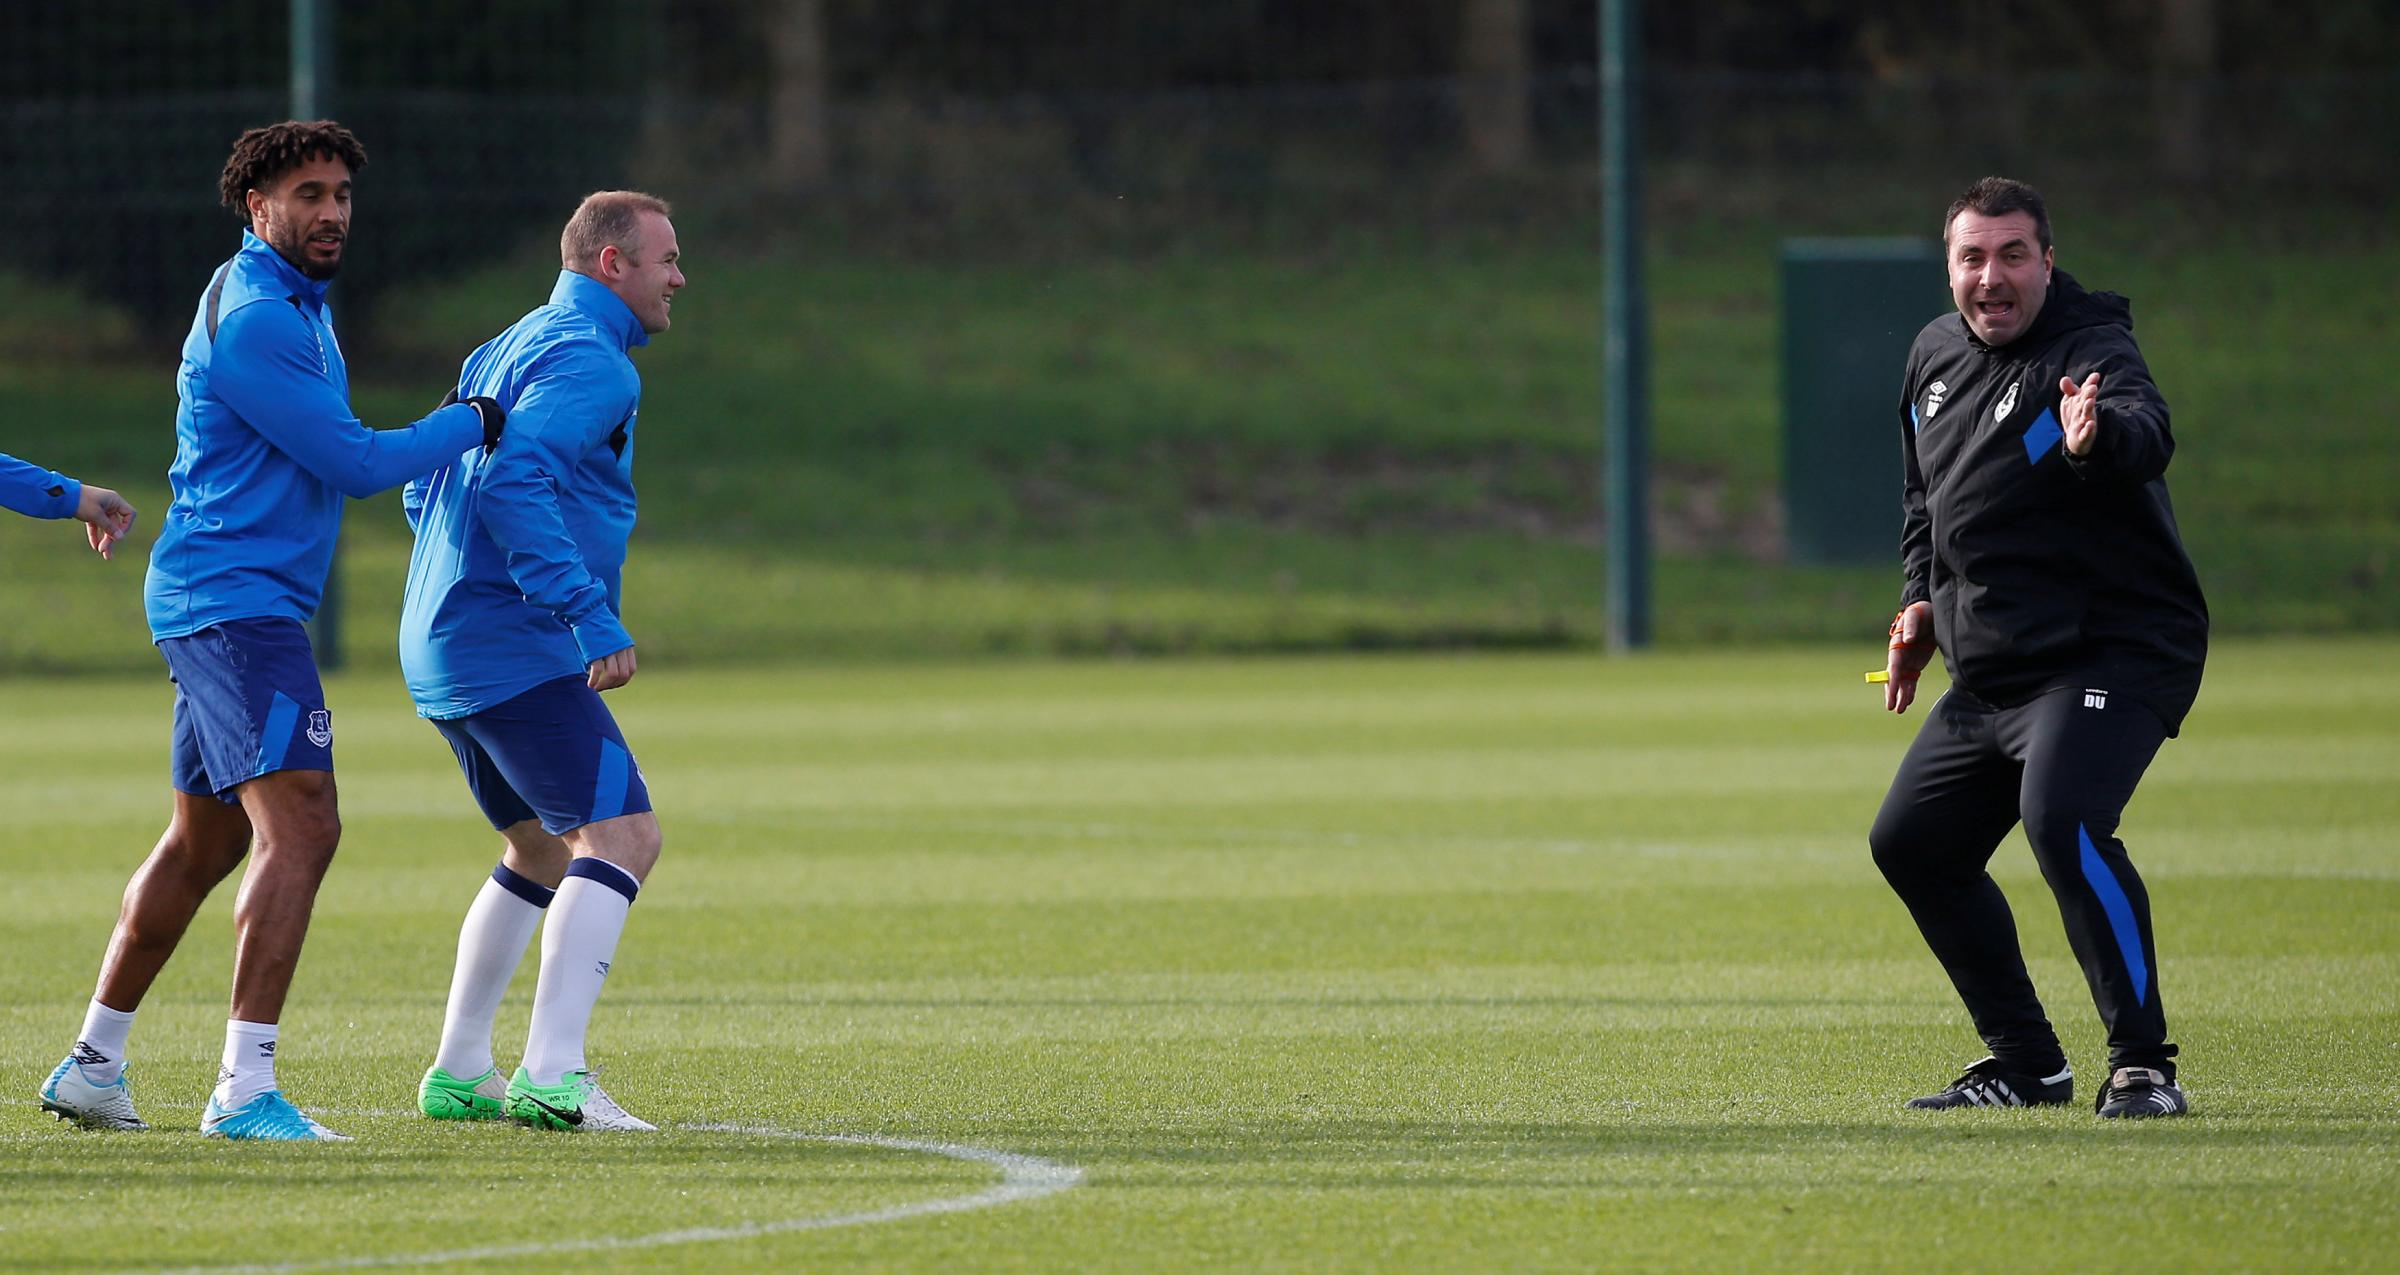 David Unsworth in Everton training with Wayne Rooney and Ashley Williams. Picture: Action Images